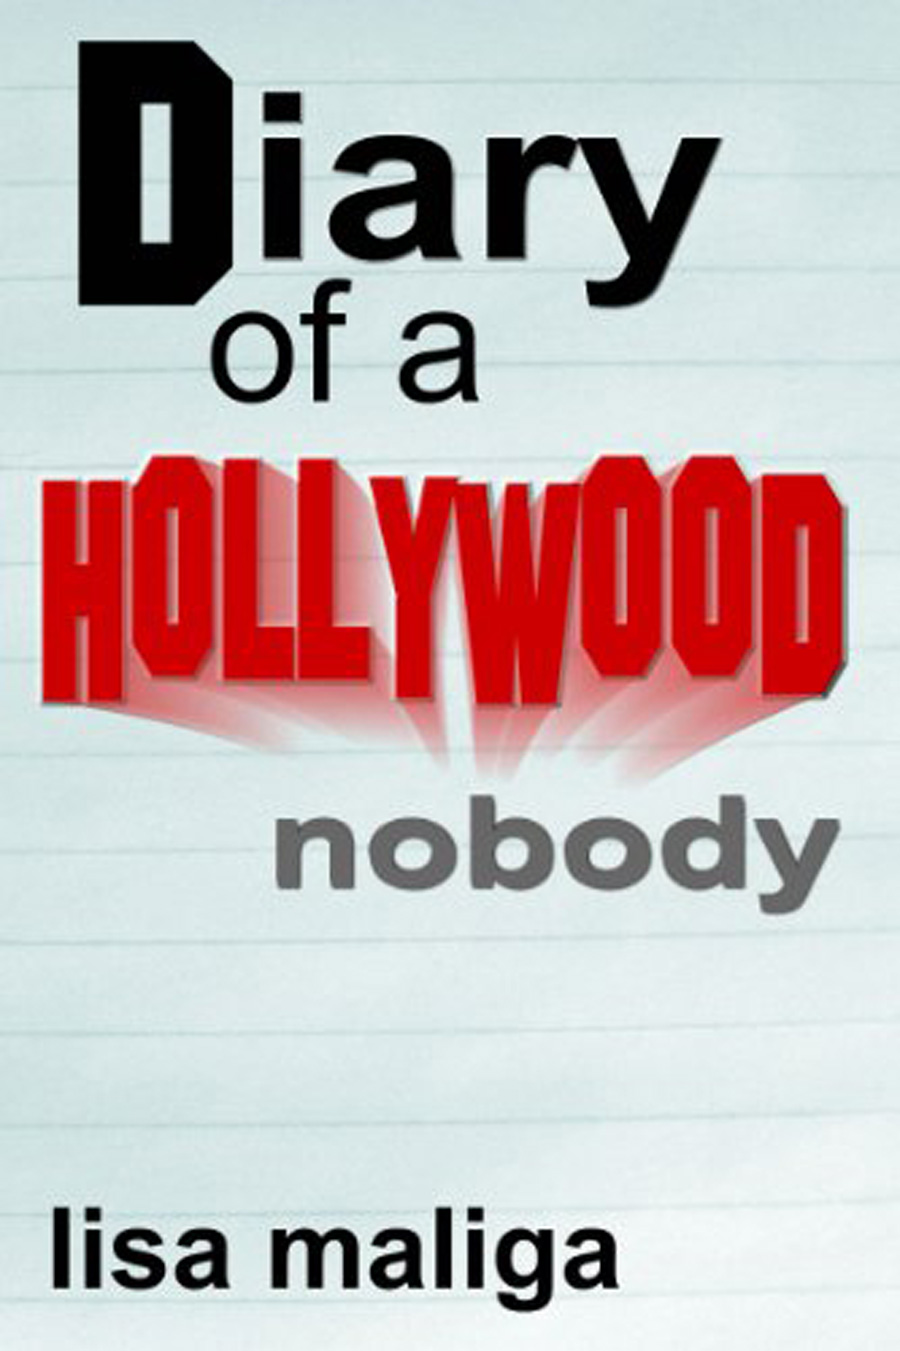 Diary-of-a-Hollywood-Nobody-Book-by-Lisa-Maliga.jpg